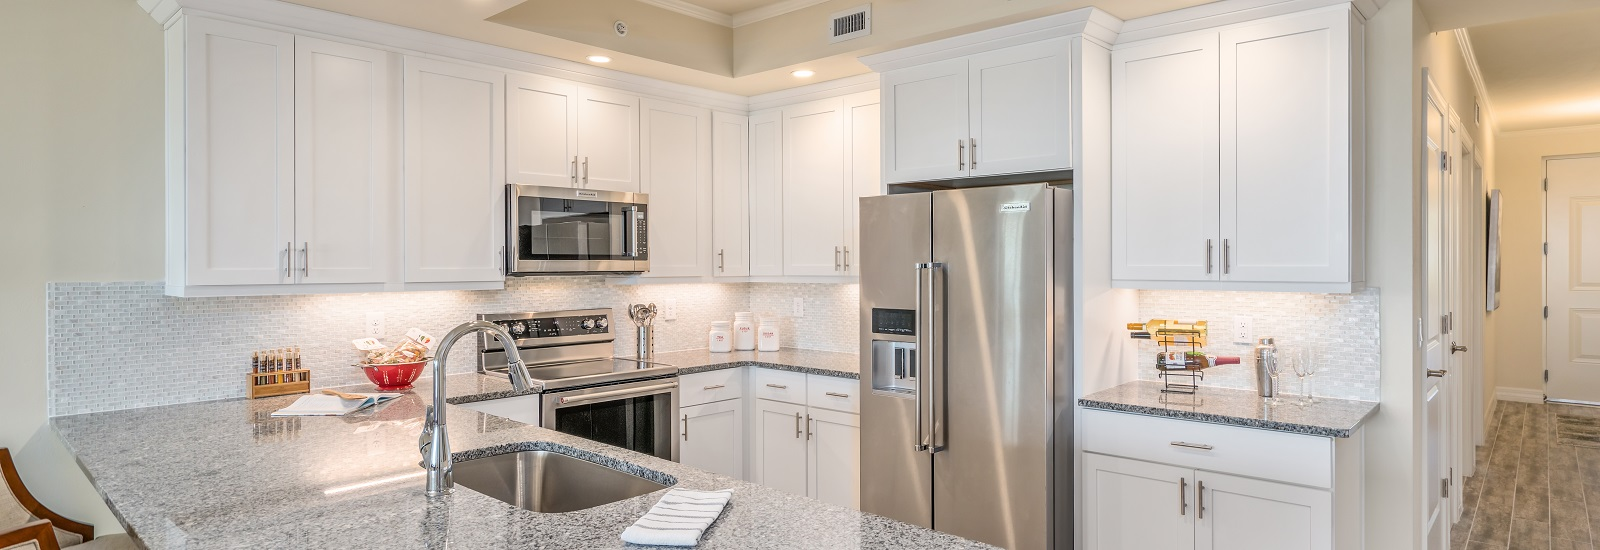 EdgewaterHB-kitchen-model.jpg